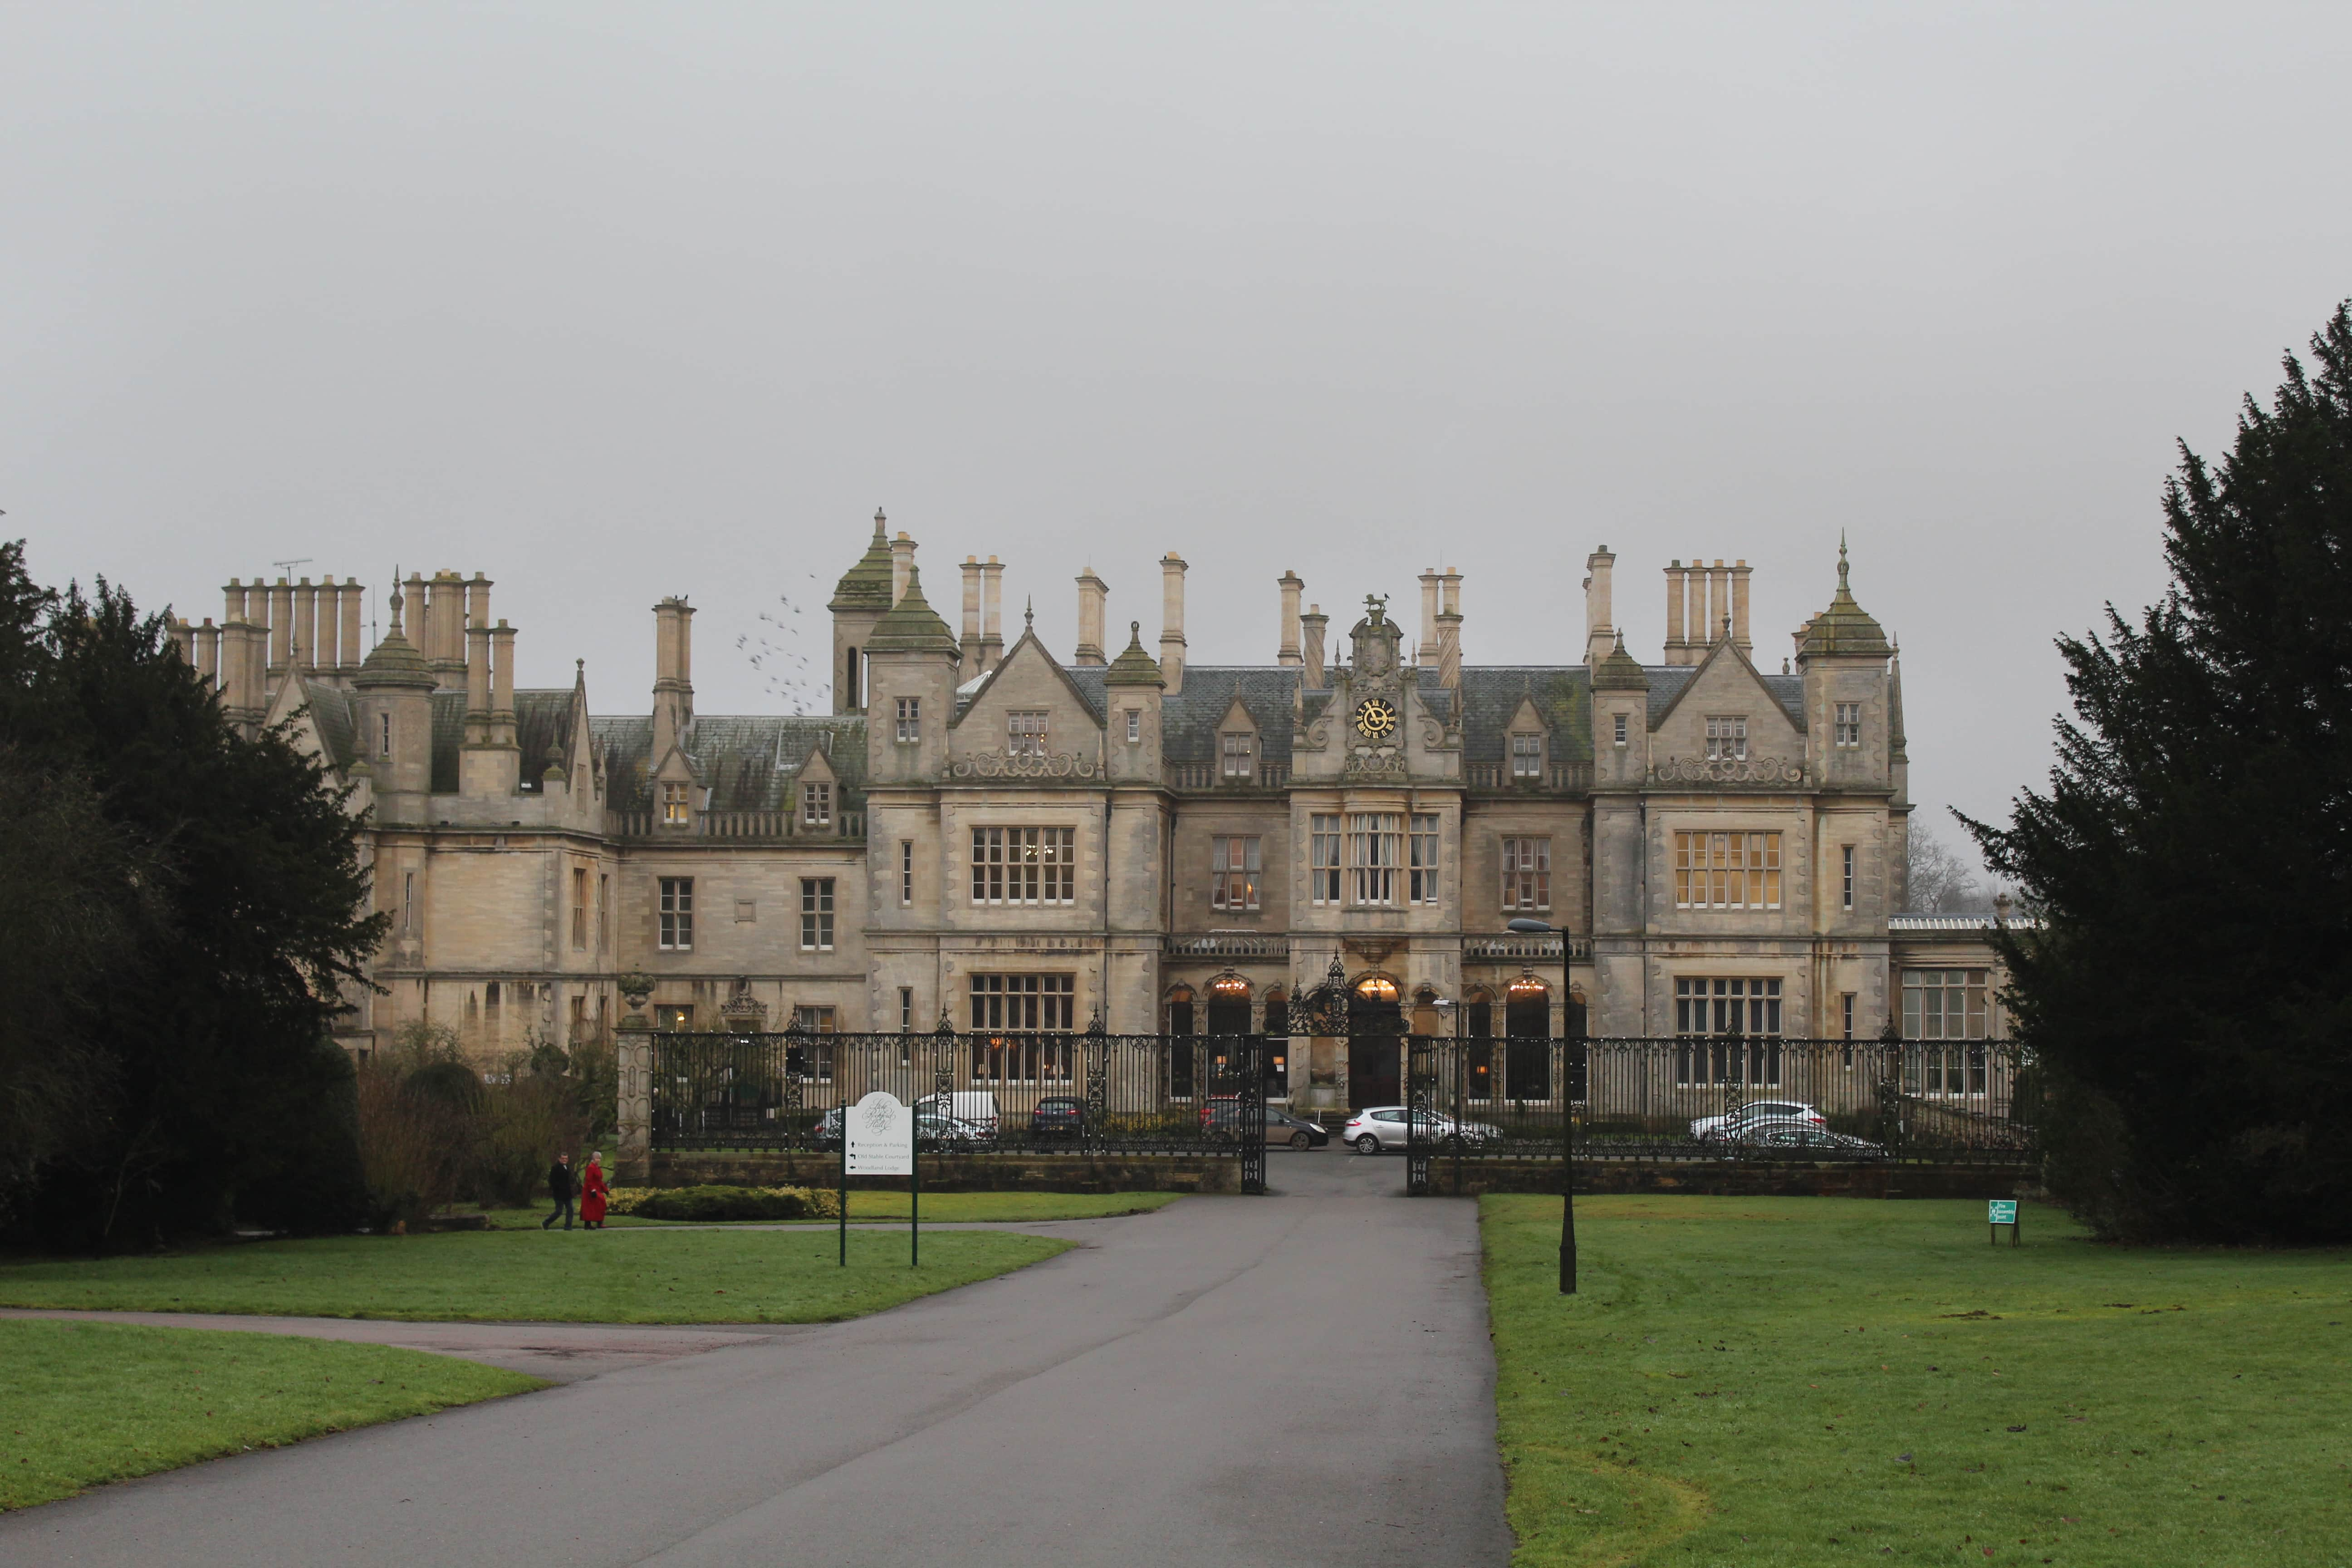 Stoke Rochford hall, afternoon tea blog review. Bucket list idea